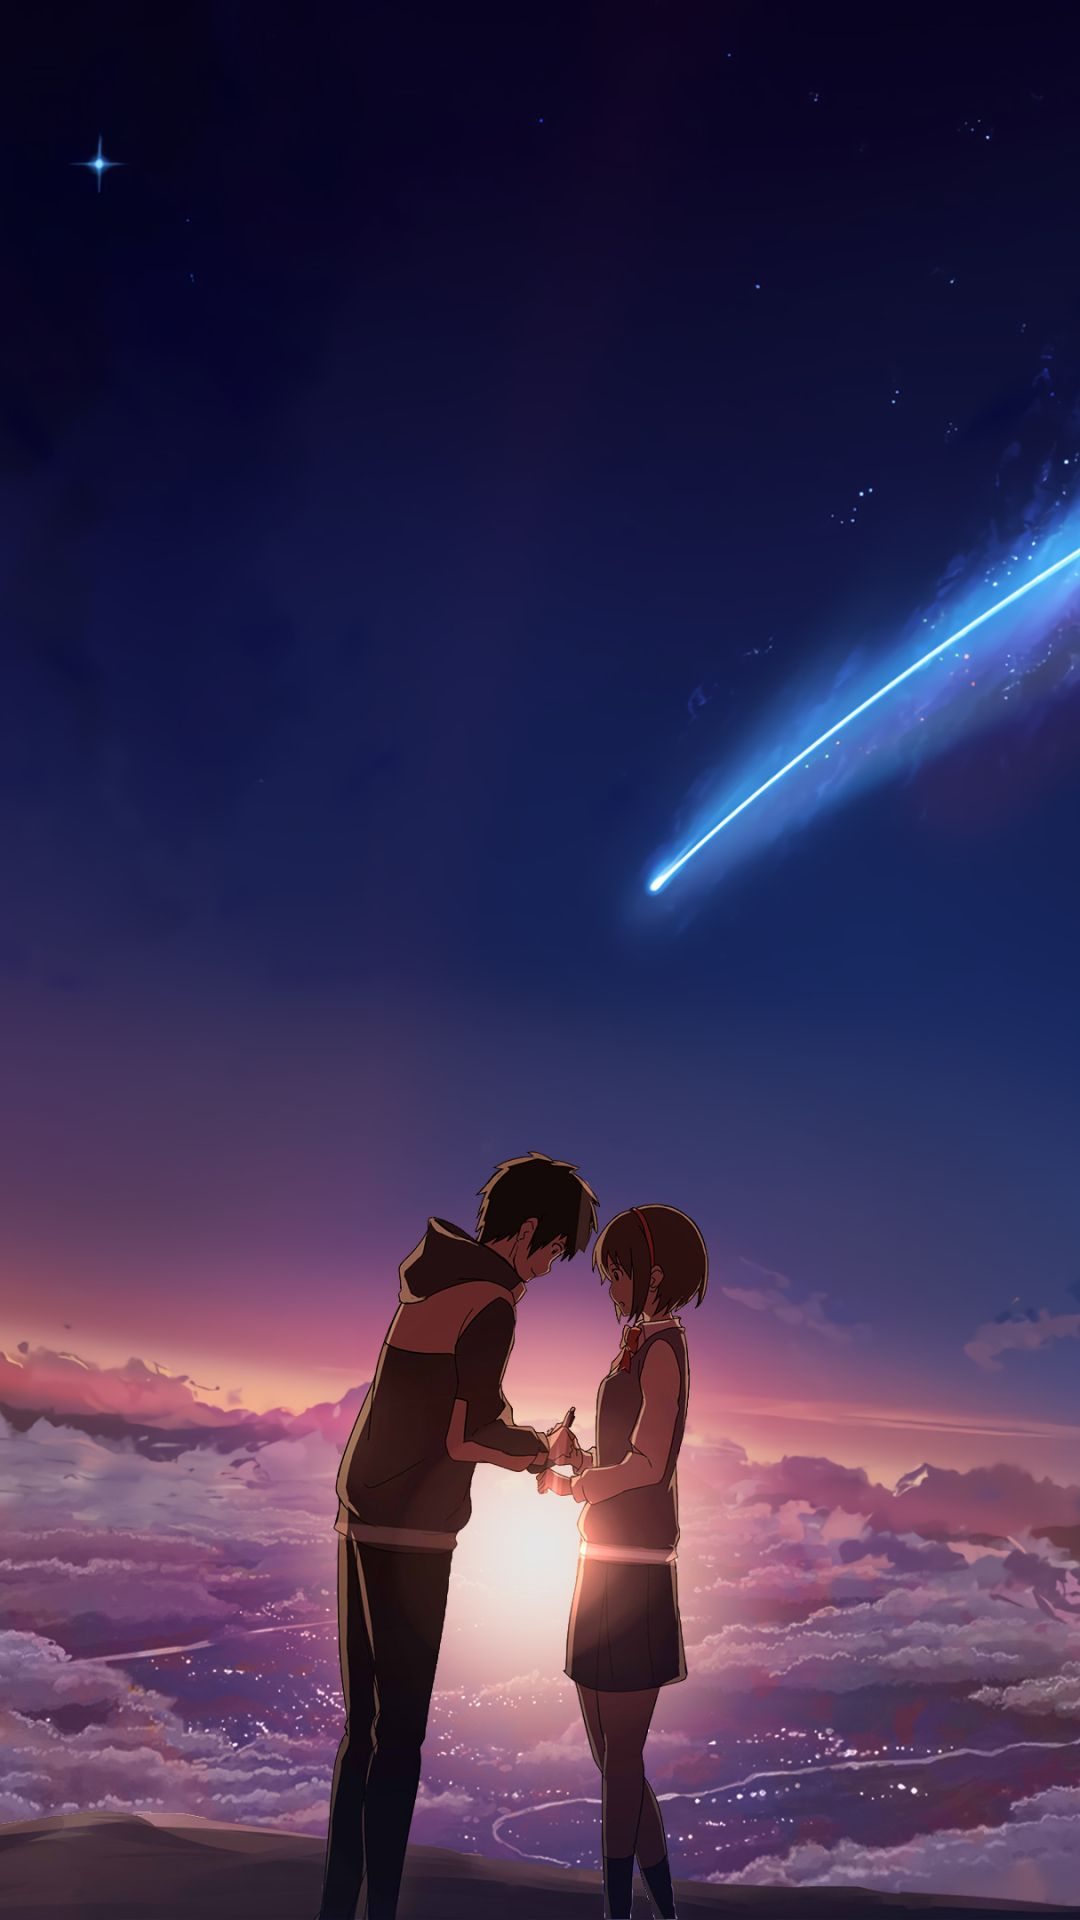 Your Name Phone Anime in 2020 Your name anime, Anime